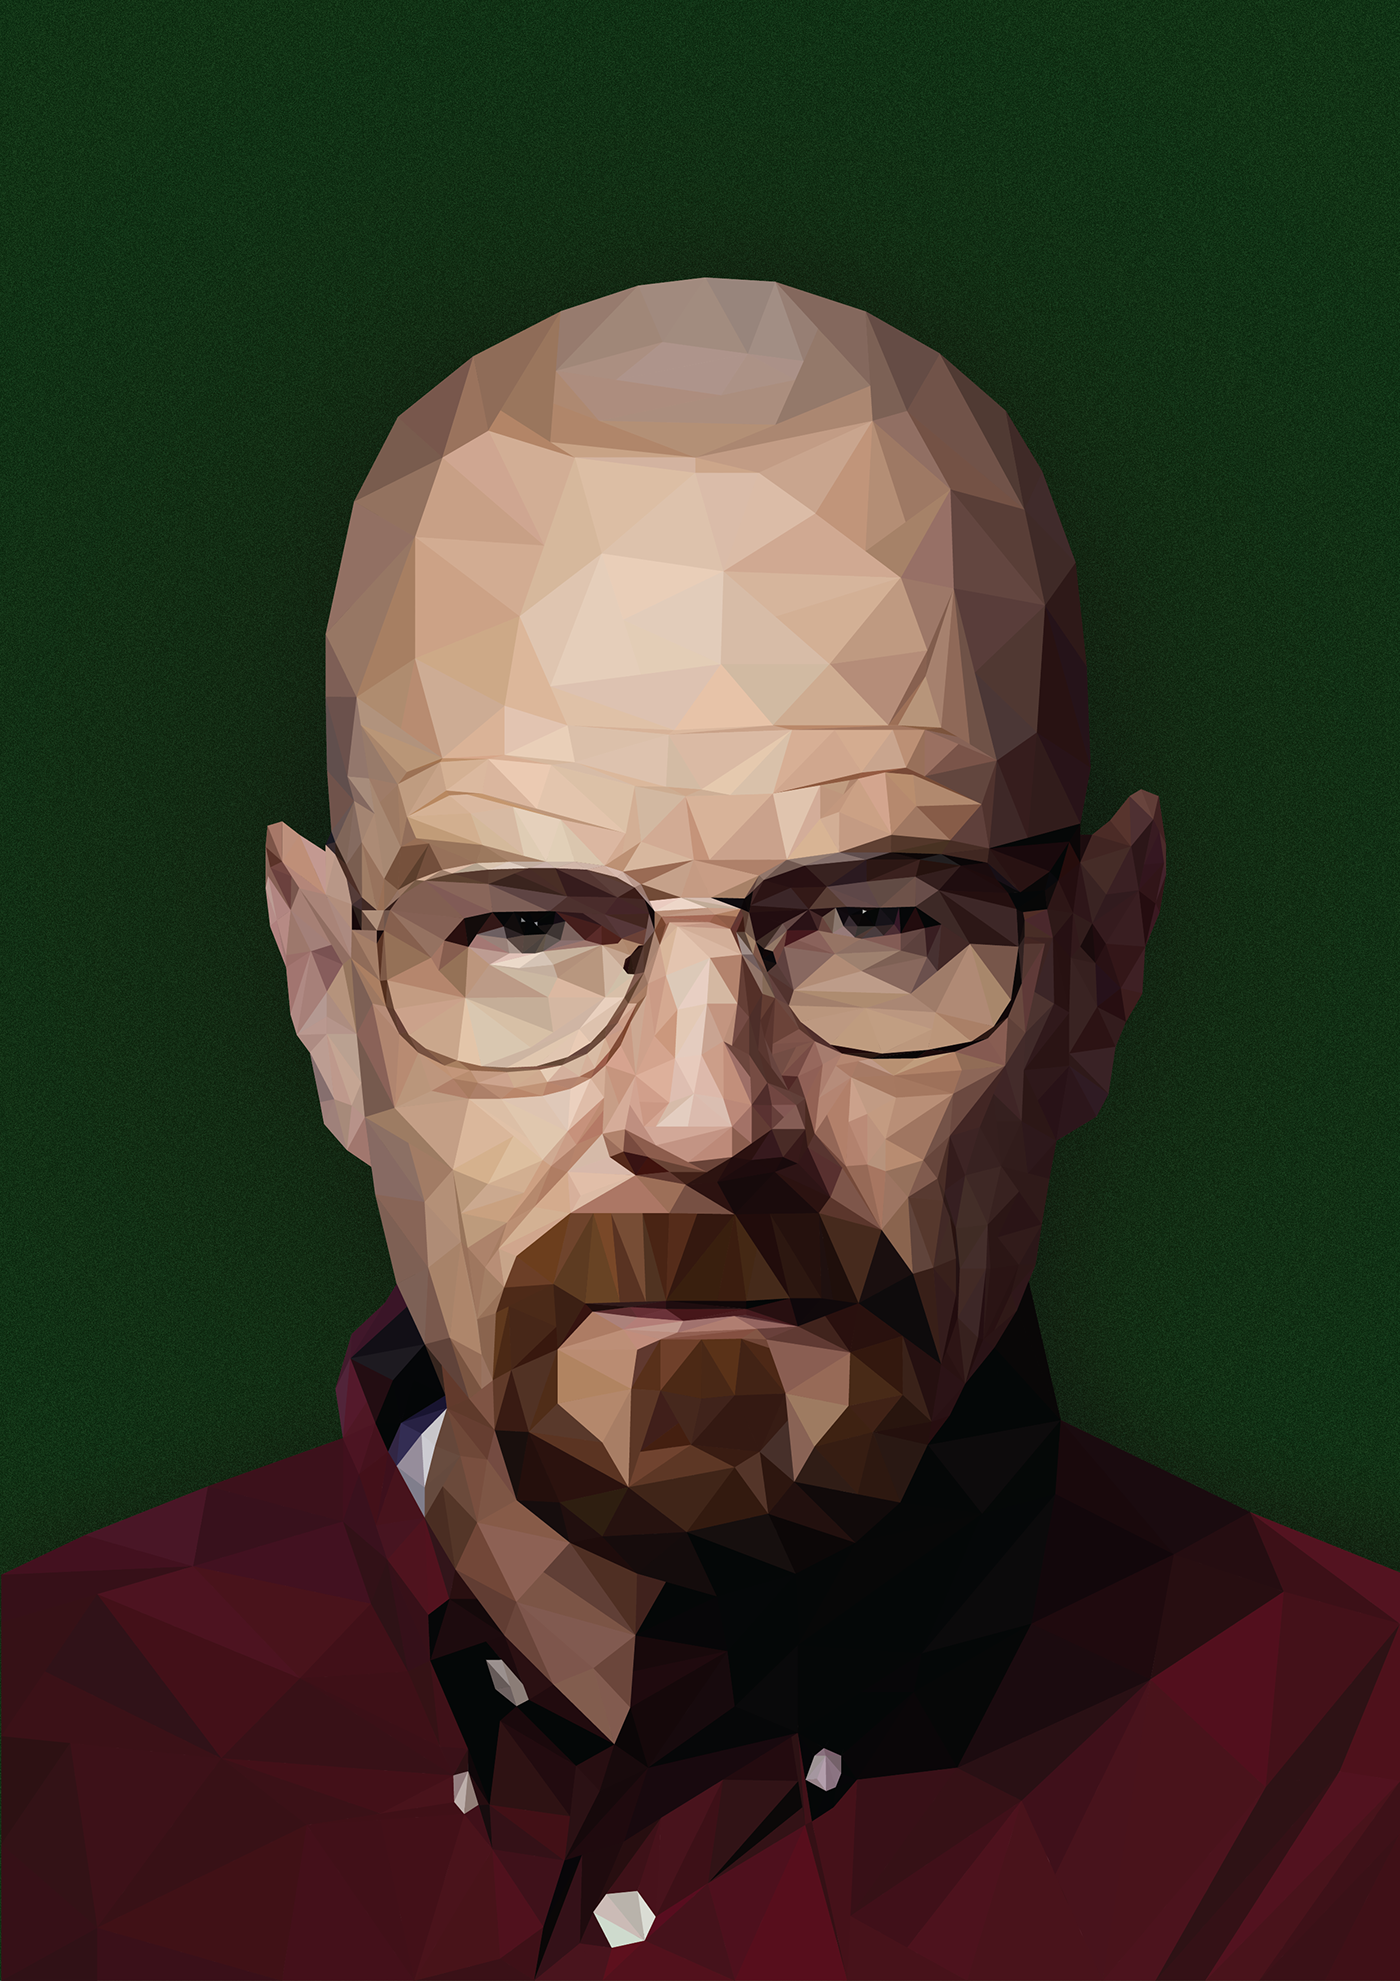 Walter White (Breaking Bad) - Low Poly